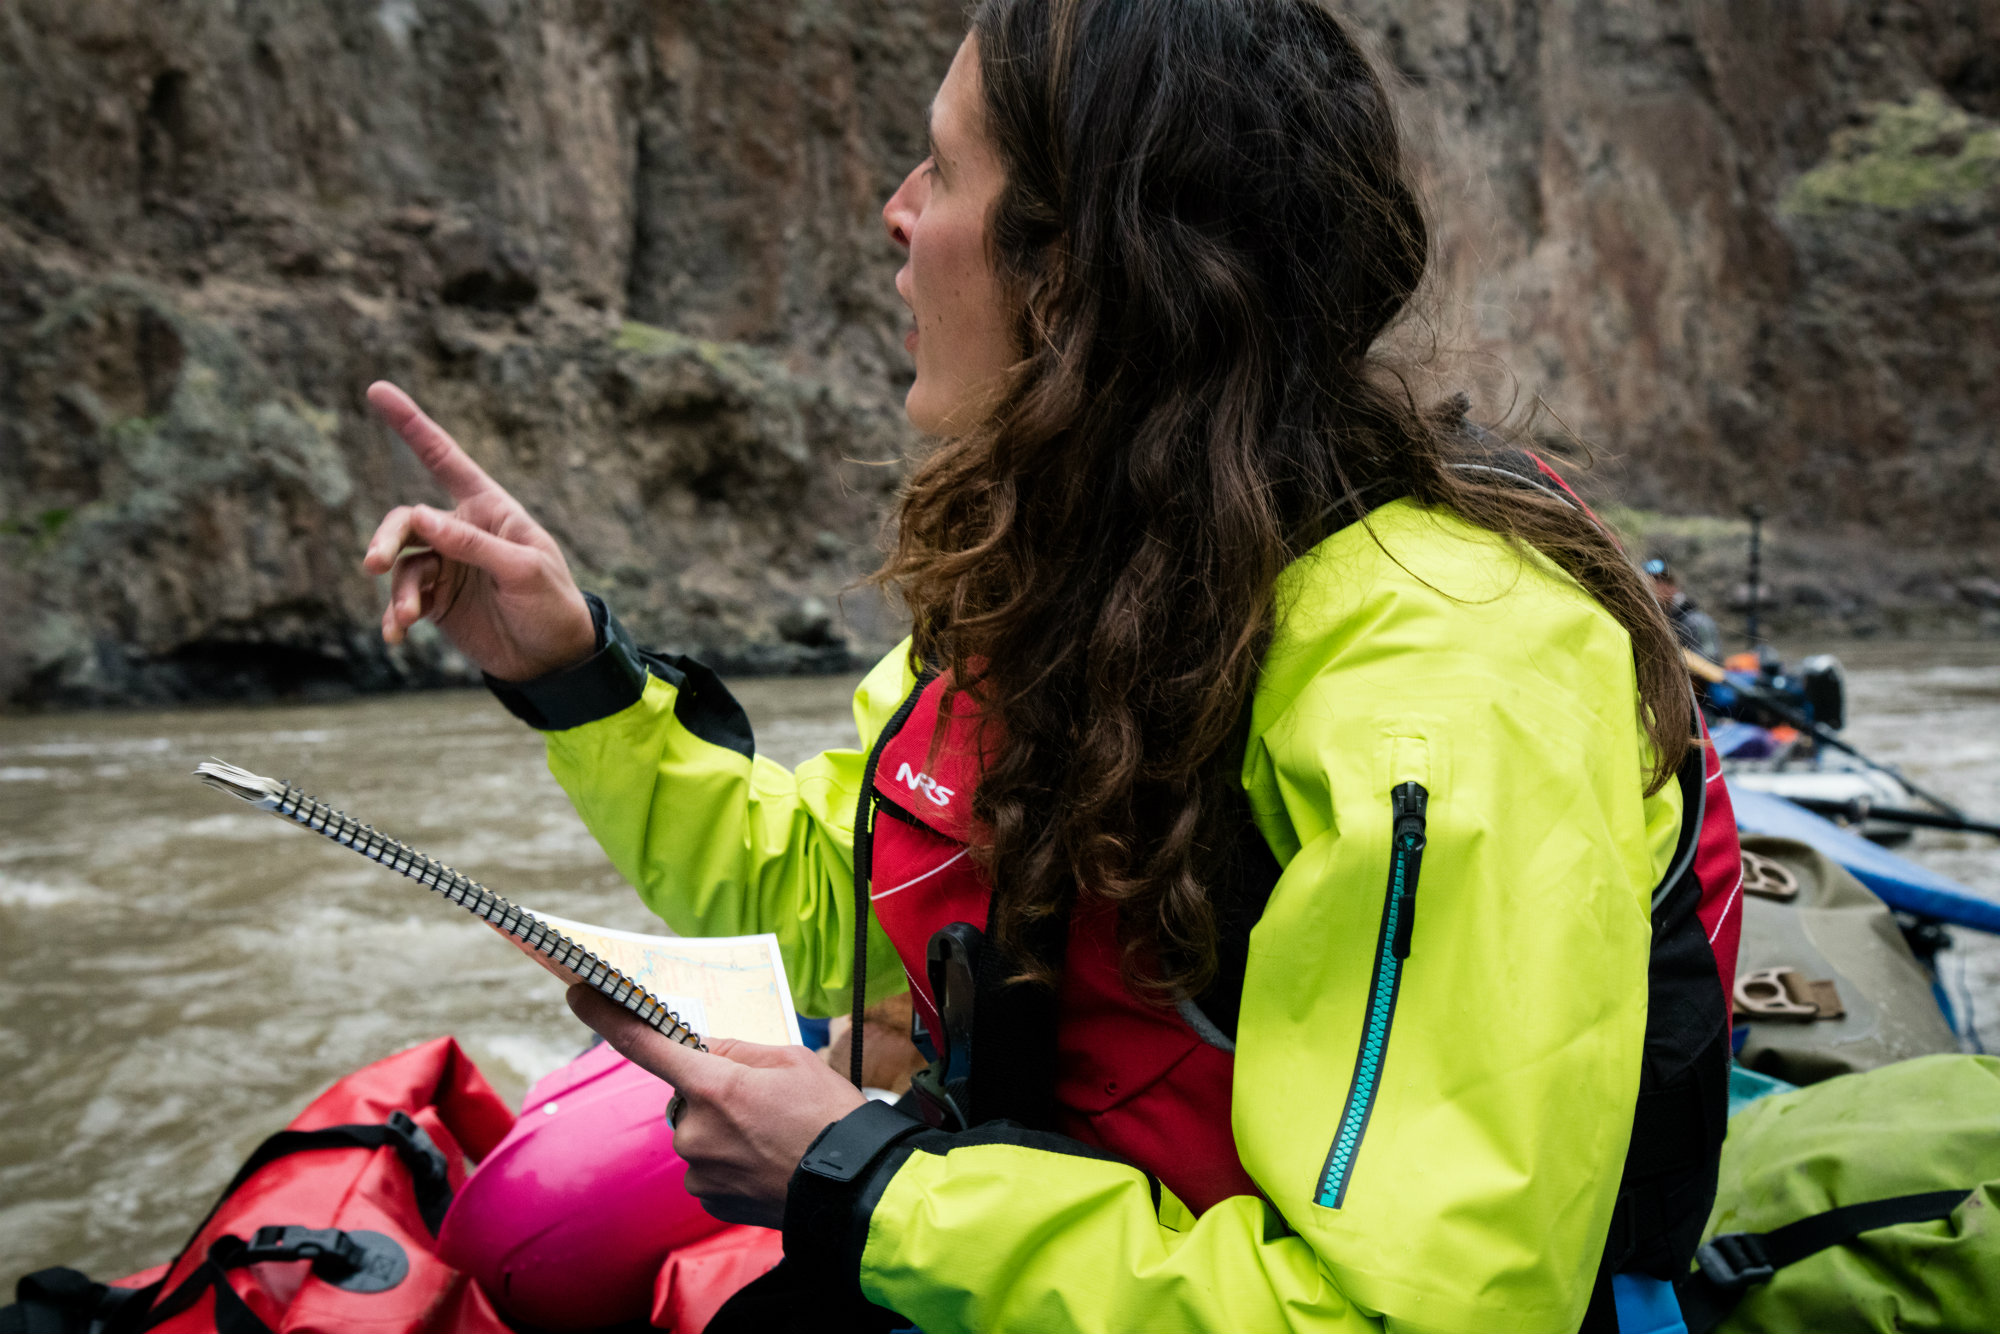 317f9abc36c Keep your eyes open. Watch everything that goes on around you. From what  knot a senior guide uses to tie up their raft, to paddle placement and boat  ...